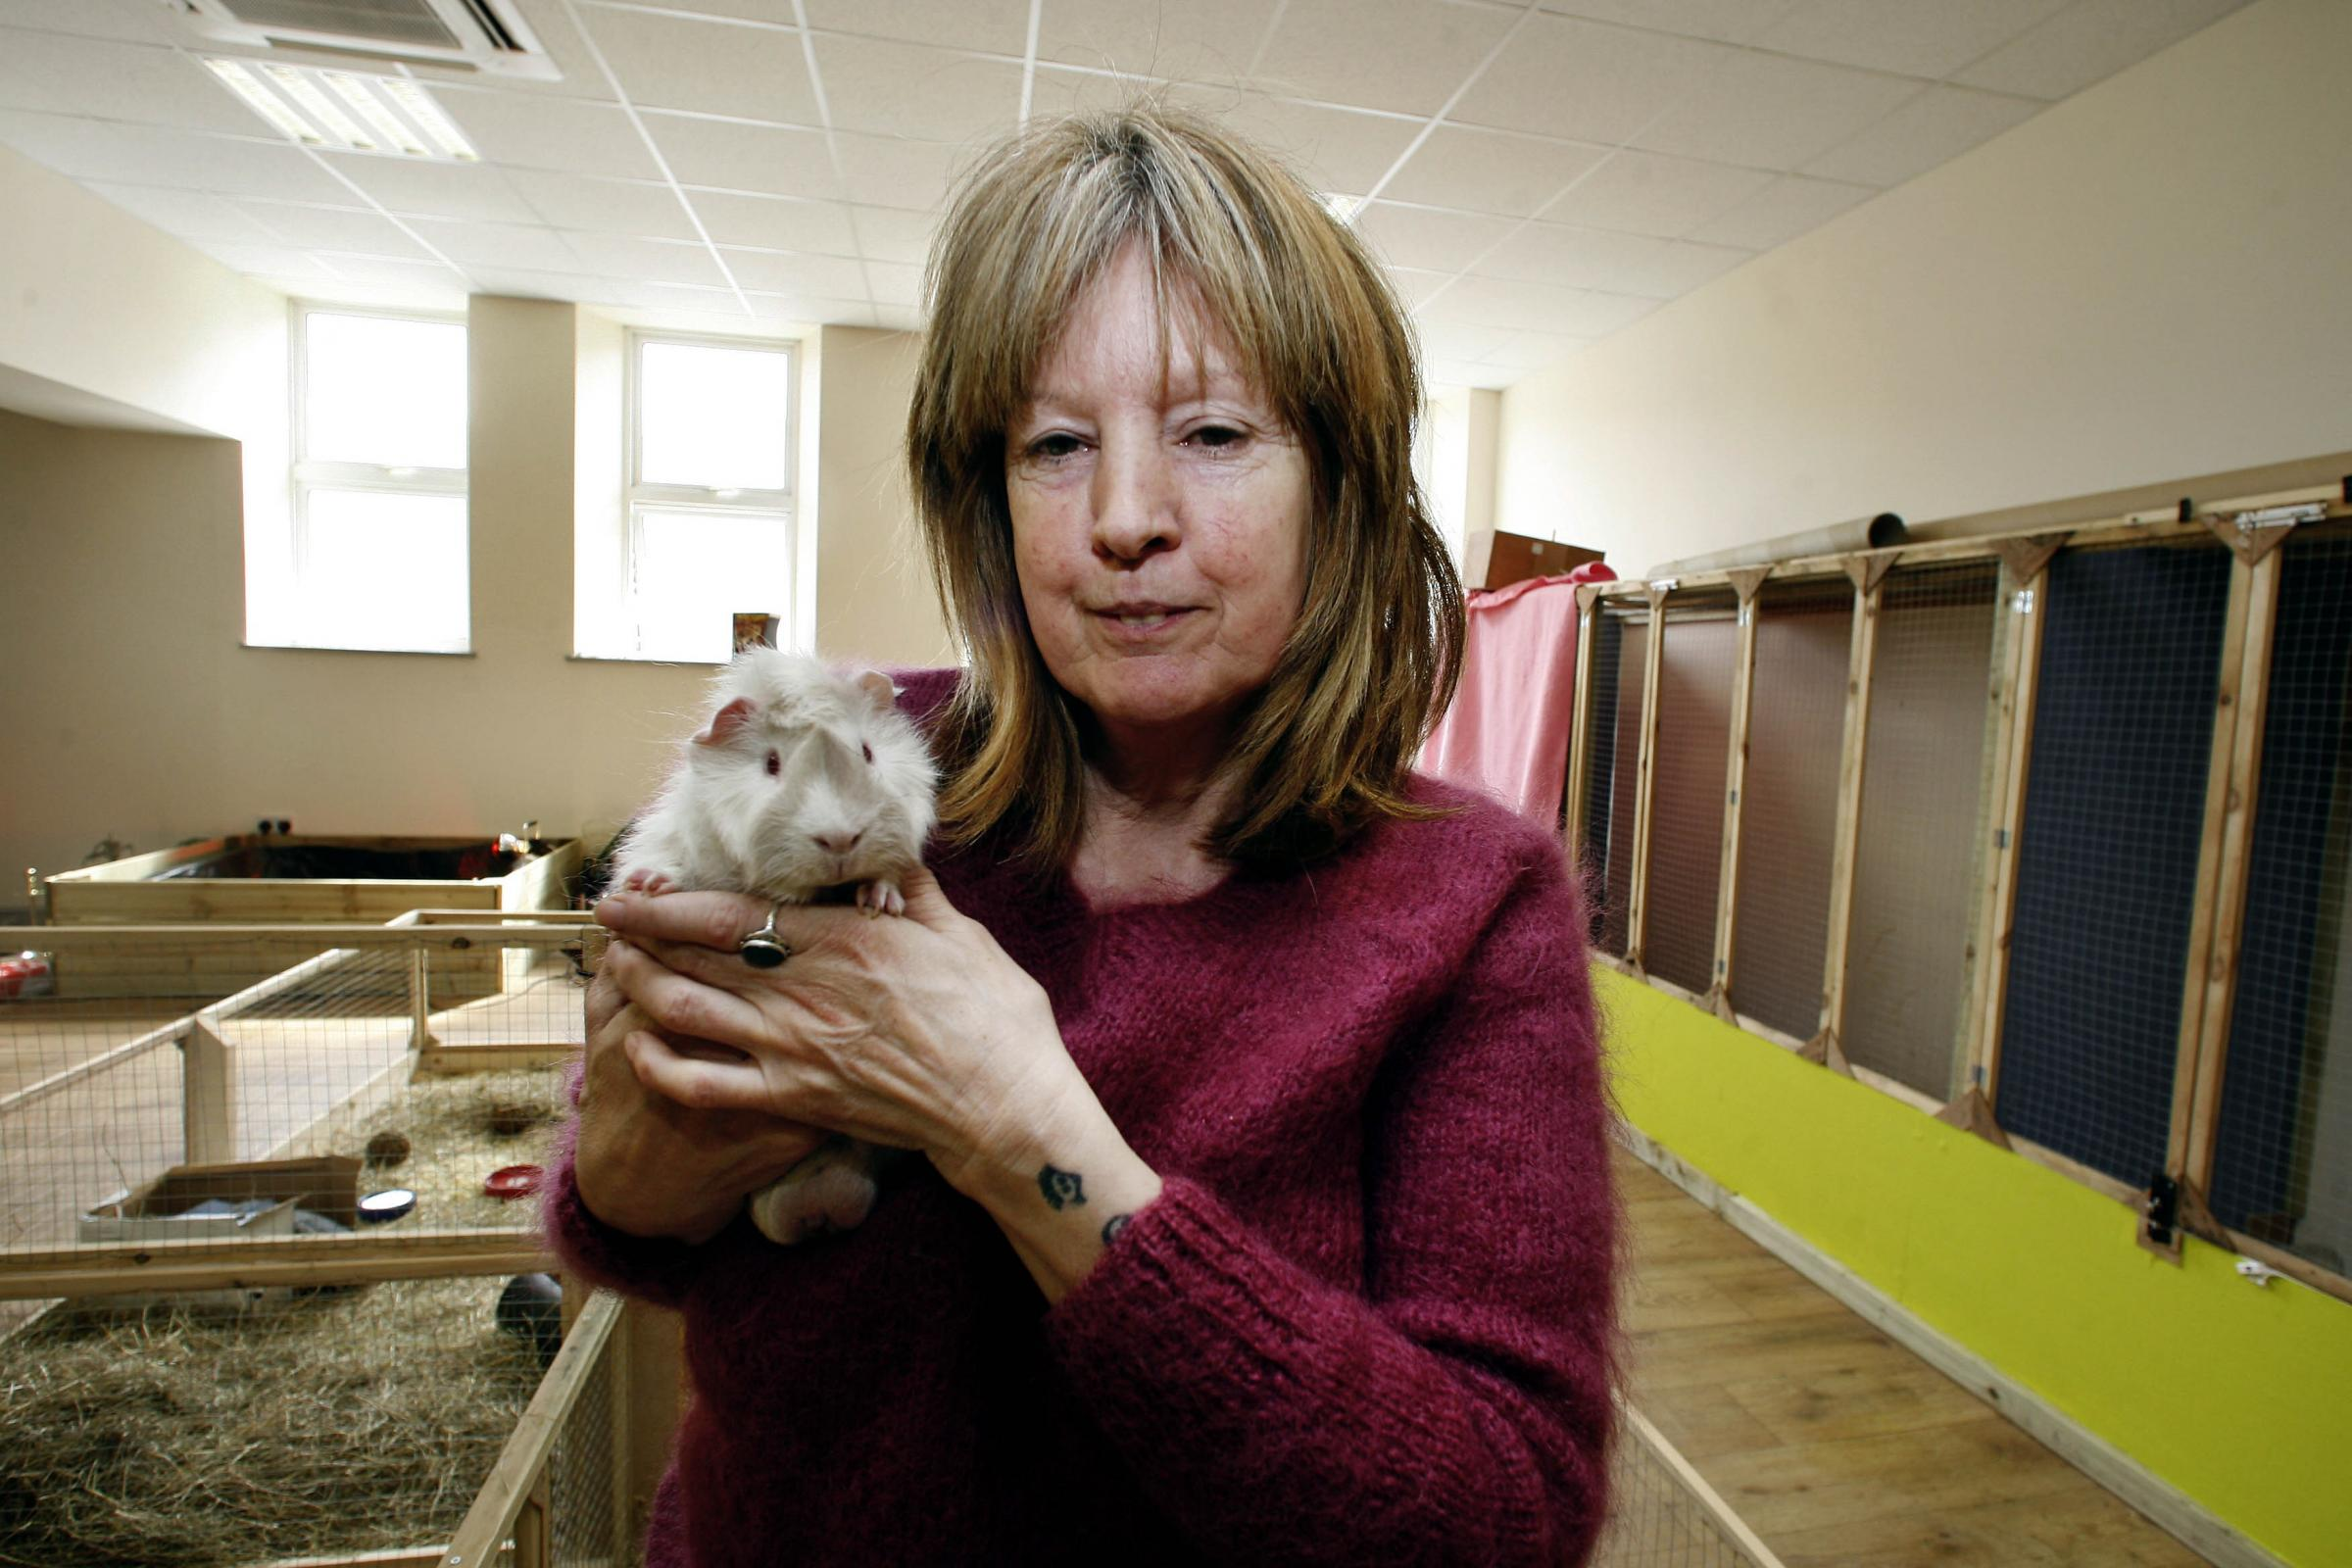 Marianne Crowley, of Wildlife Rescue Sanctuaries in Keighley